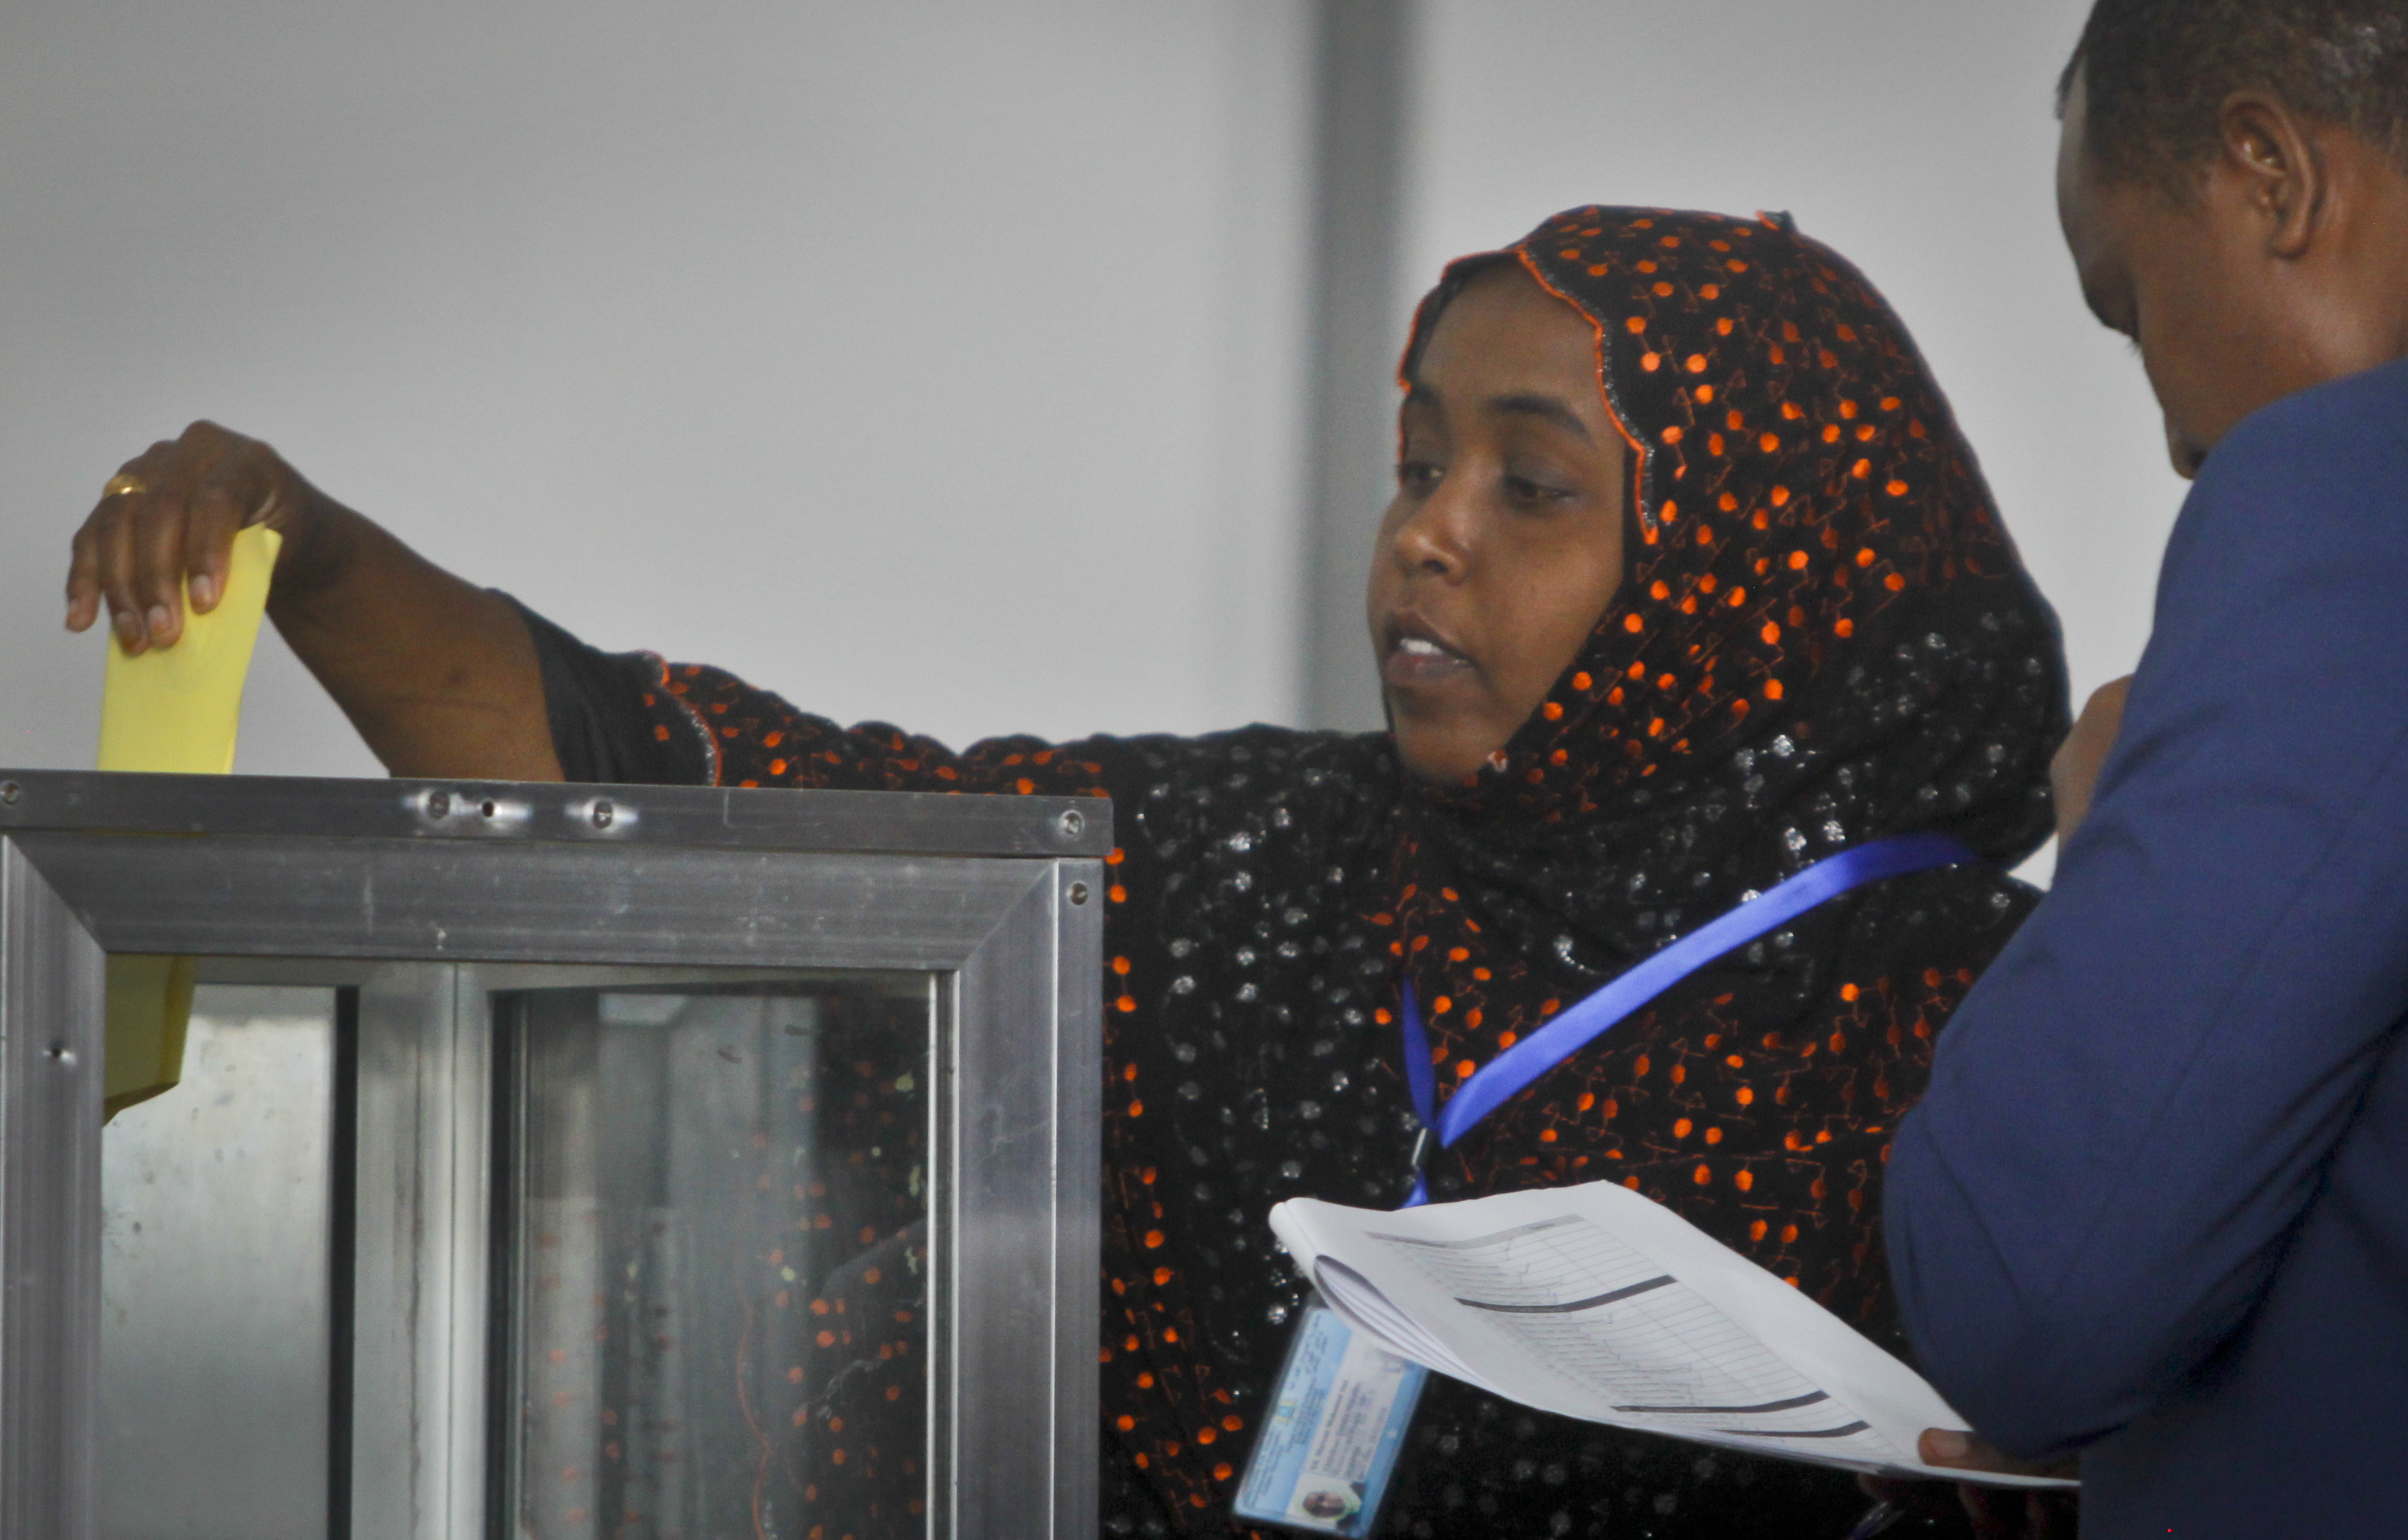 An unidentified Somali member of parliament casts her vote for the presidential election in Mogadishu, Somalia Wednesday, Feb. 8, 2017. Voting started Wednesday in Somalia's groundbreaking presidential election as members of the upper and lower houses of the legislature cast ballots in the first round with 21 candidates for president, amid a security lockdown that has closed the capital's international airport and cleared major streets. (AP Photo/Farah Abdi Warsameh)